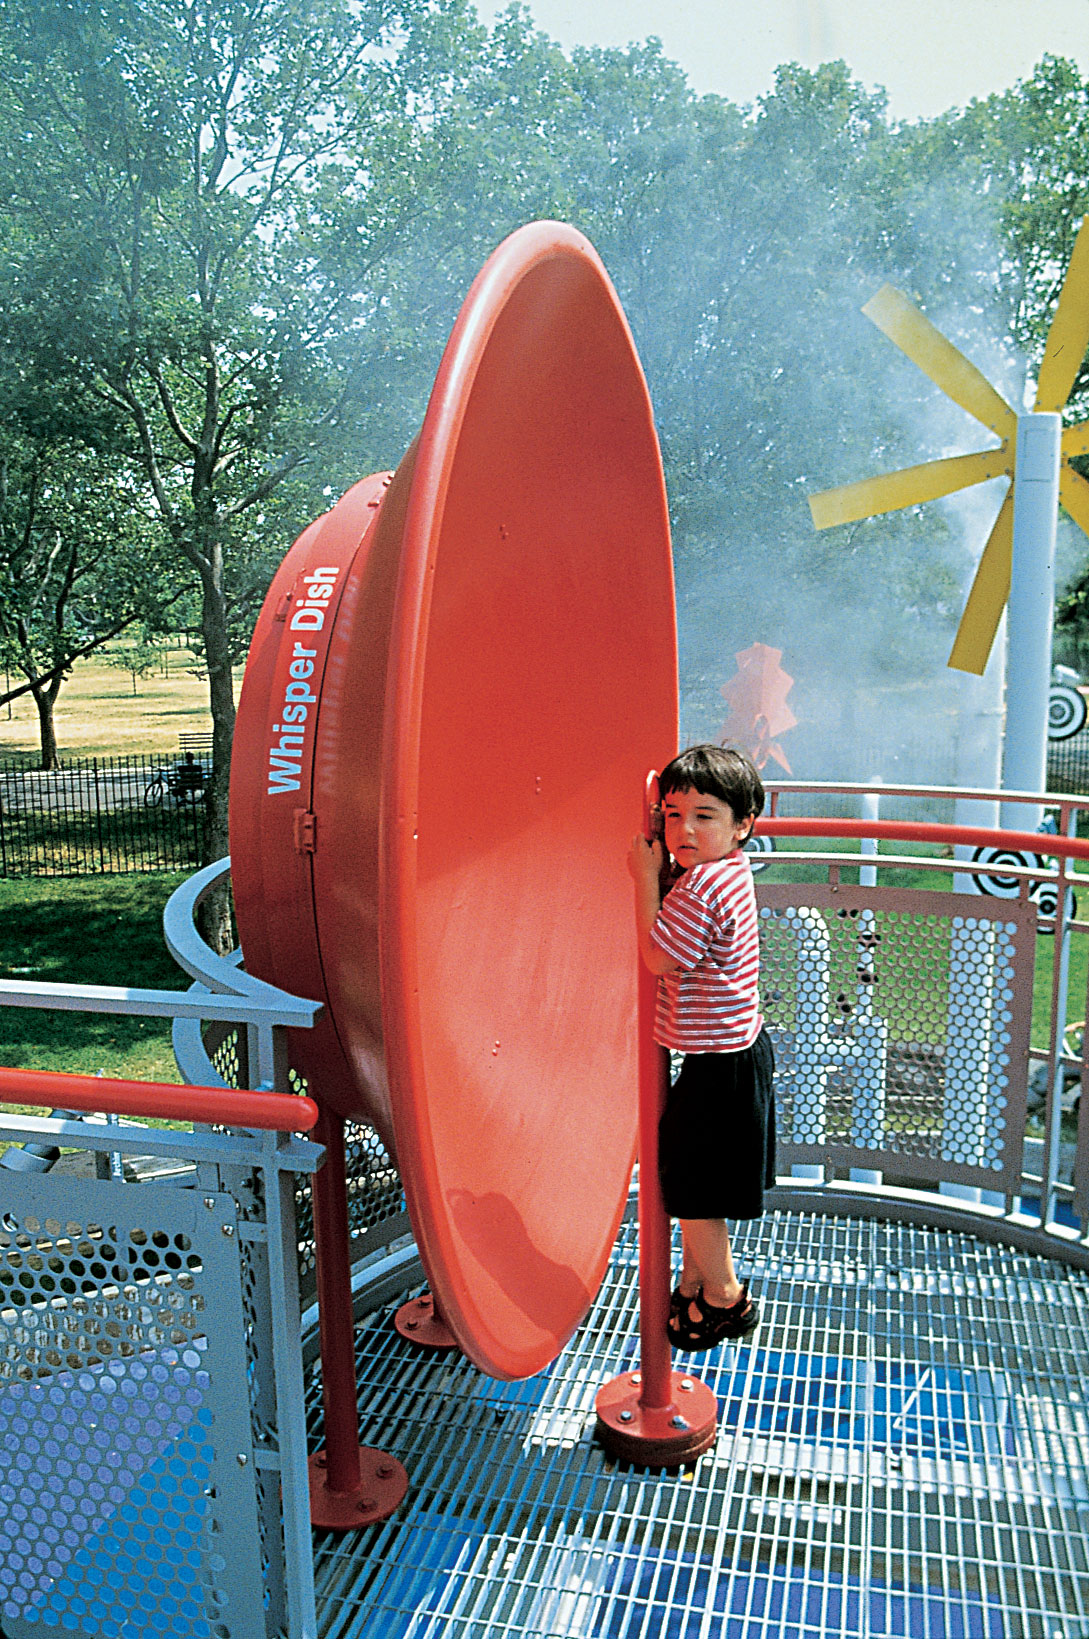 Project image 2 for Kidpower! Science Playground, New York Hall of Science, Queens